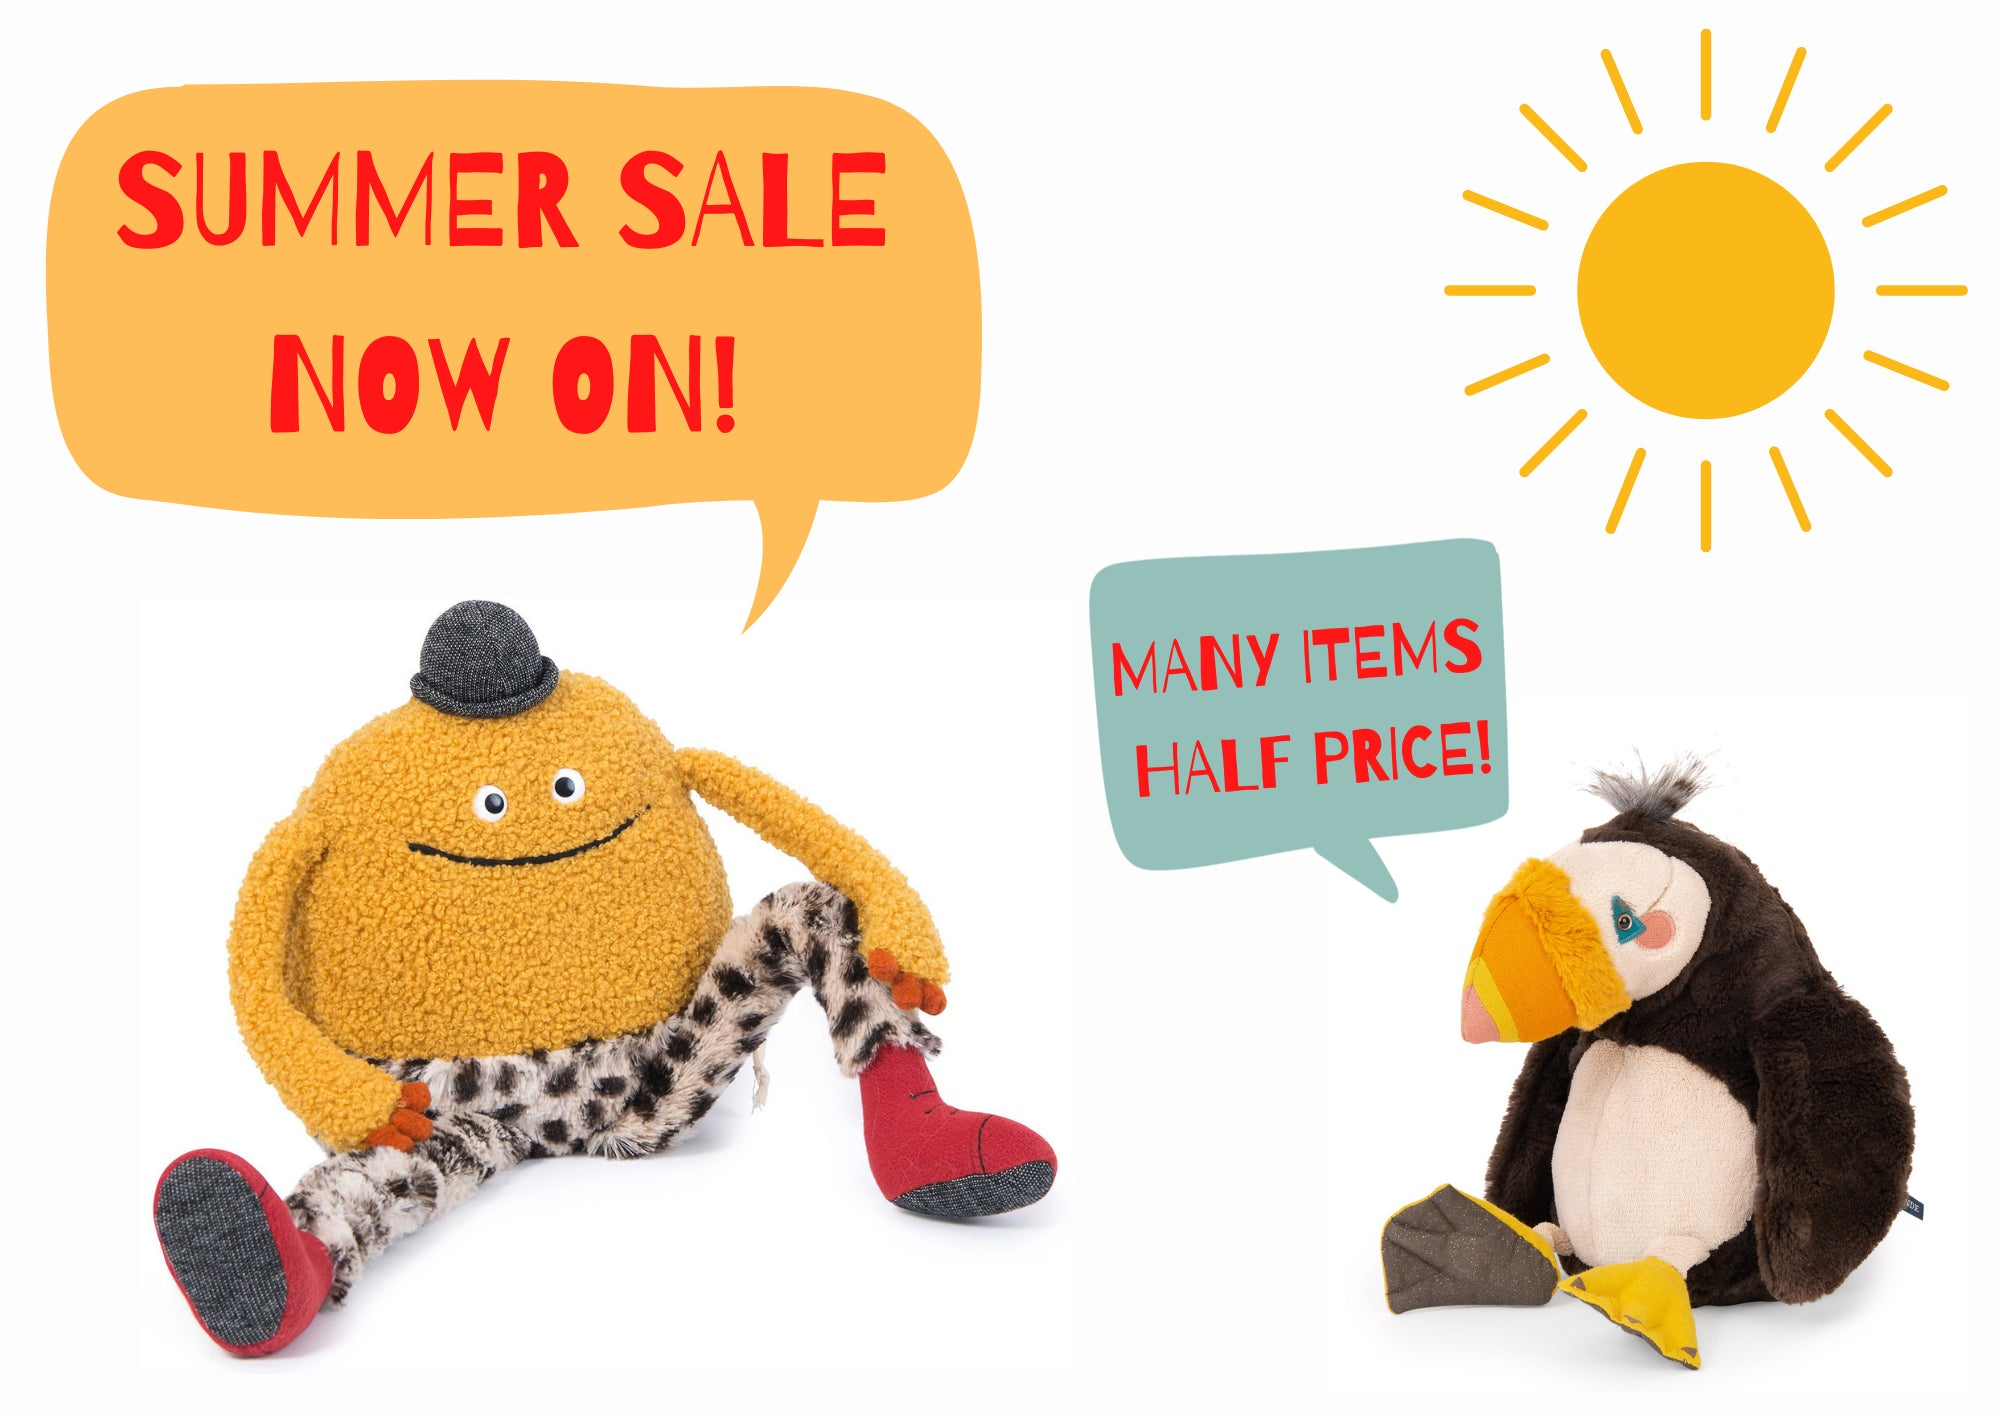 HOP INTO OUR SHOP AND SAY HELLO TO OUR CUDDLY TOYS...